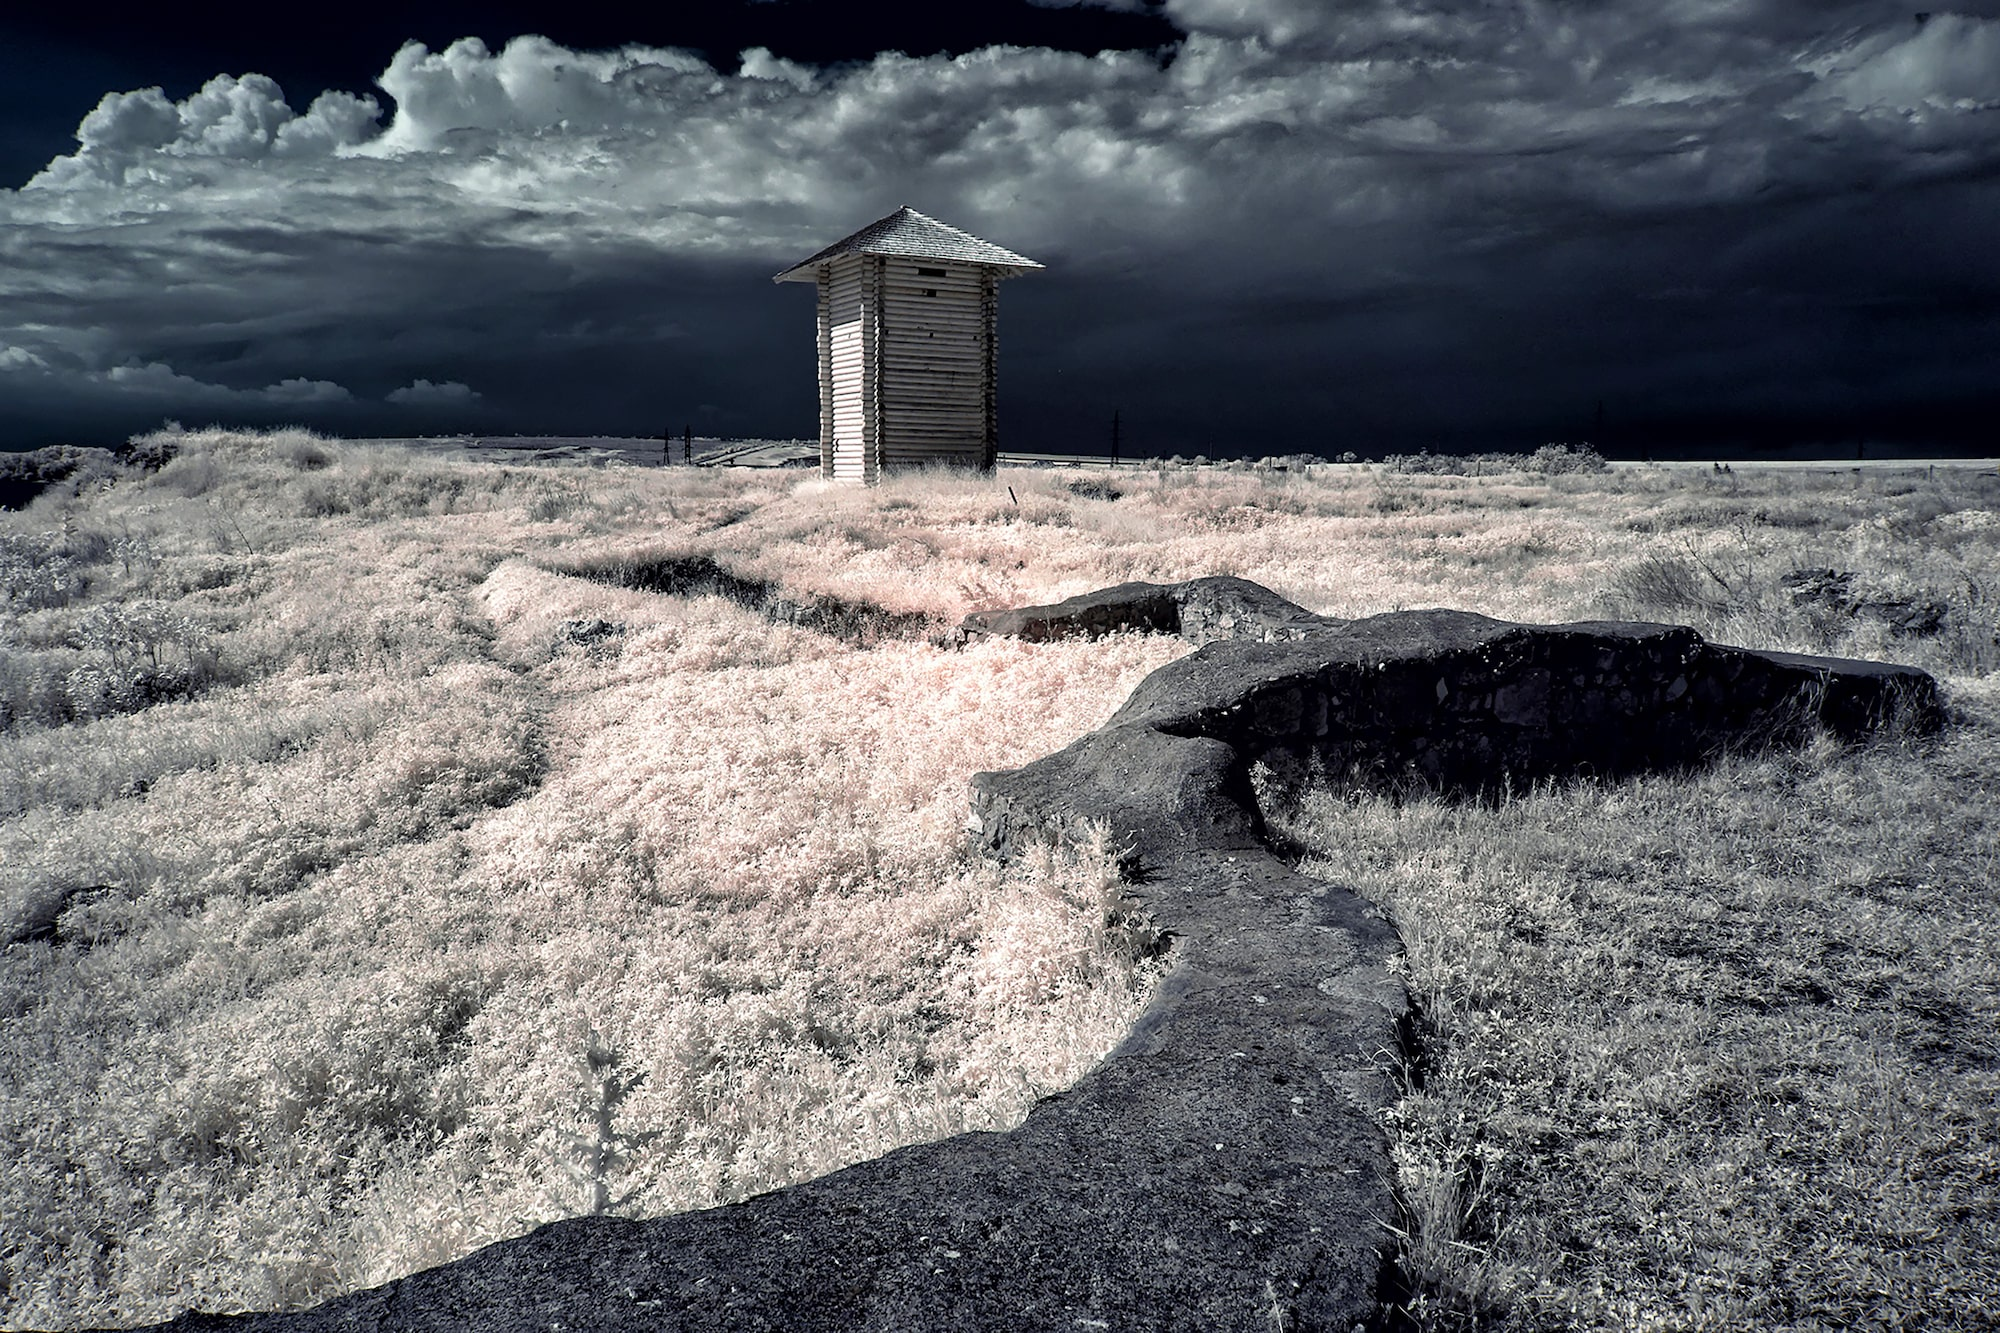 alin popescu sony alpha 6000 infrared shot of a small building in the middle of a field